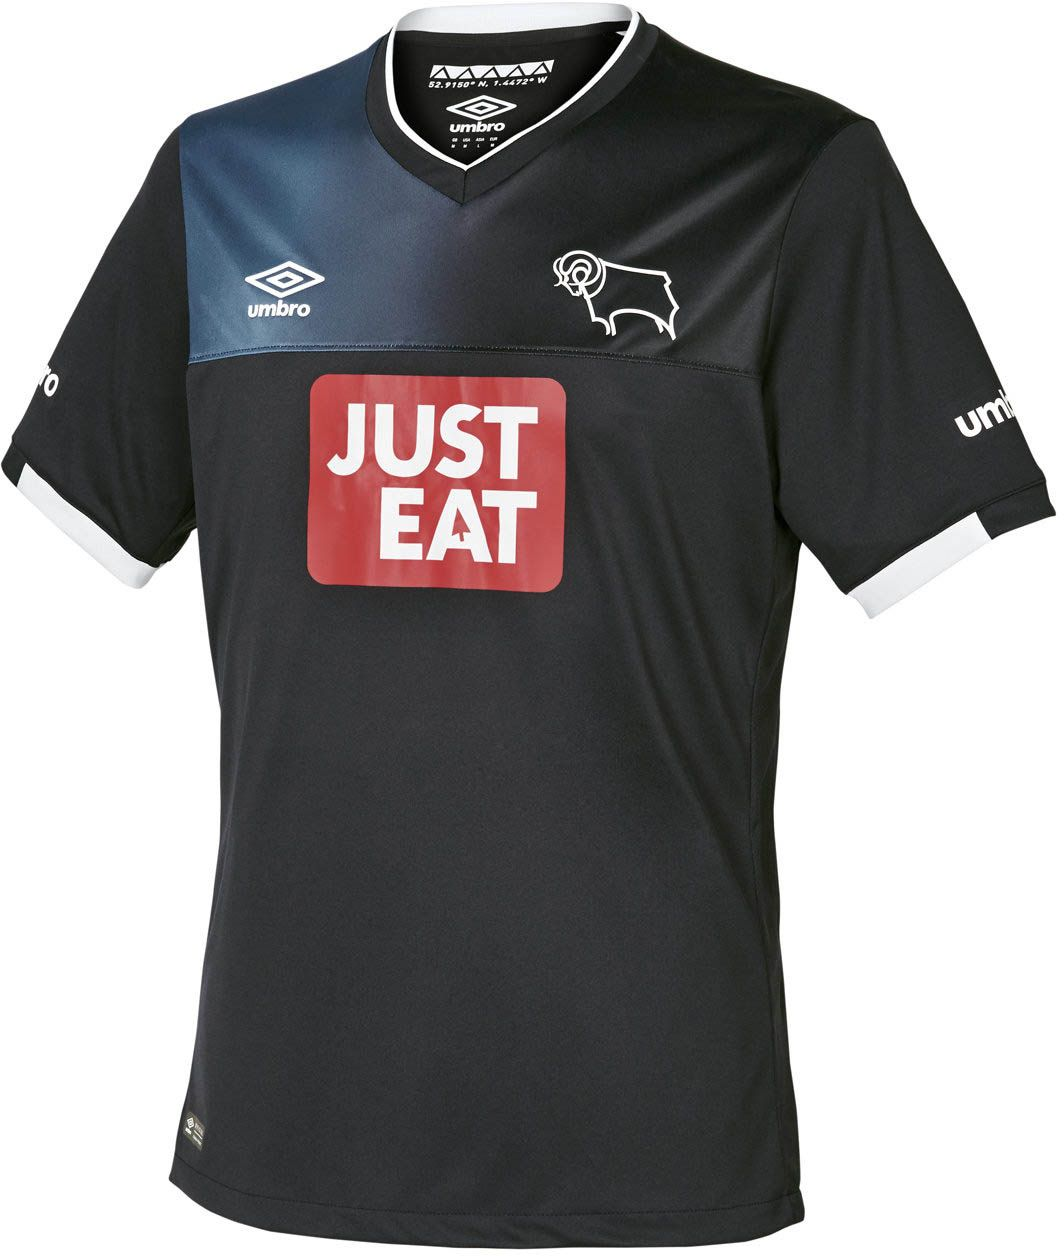 Derby County FC (England) - 2016 2017 Umbro Away Shirt  87406bc1ce740